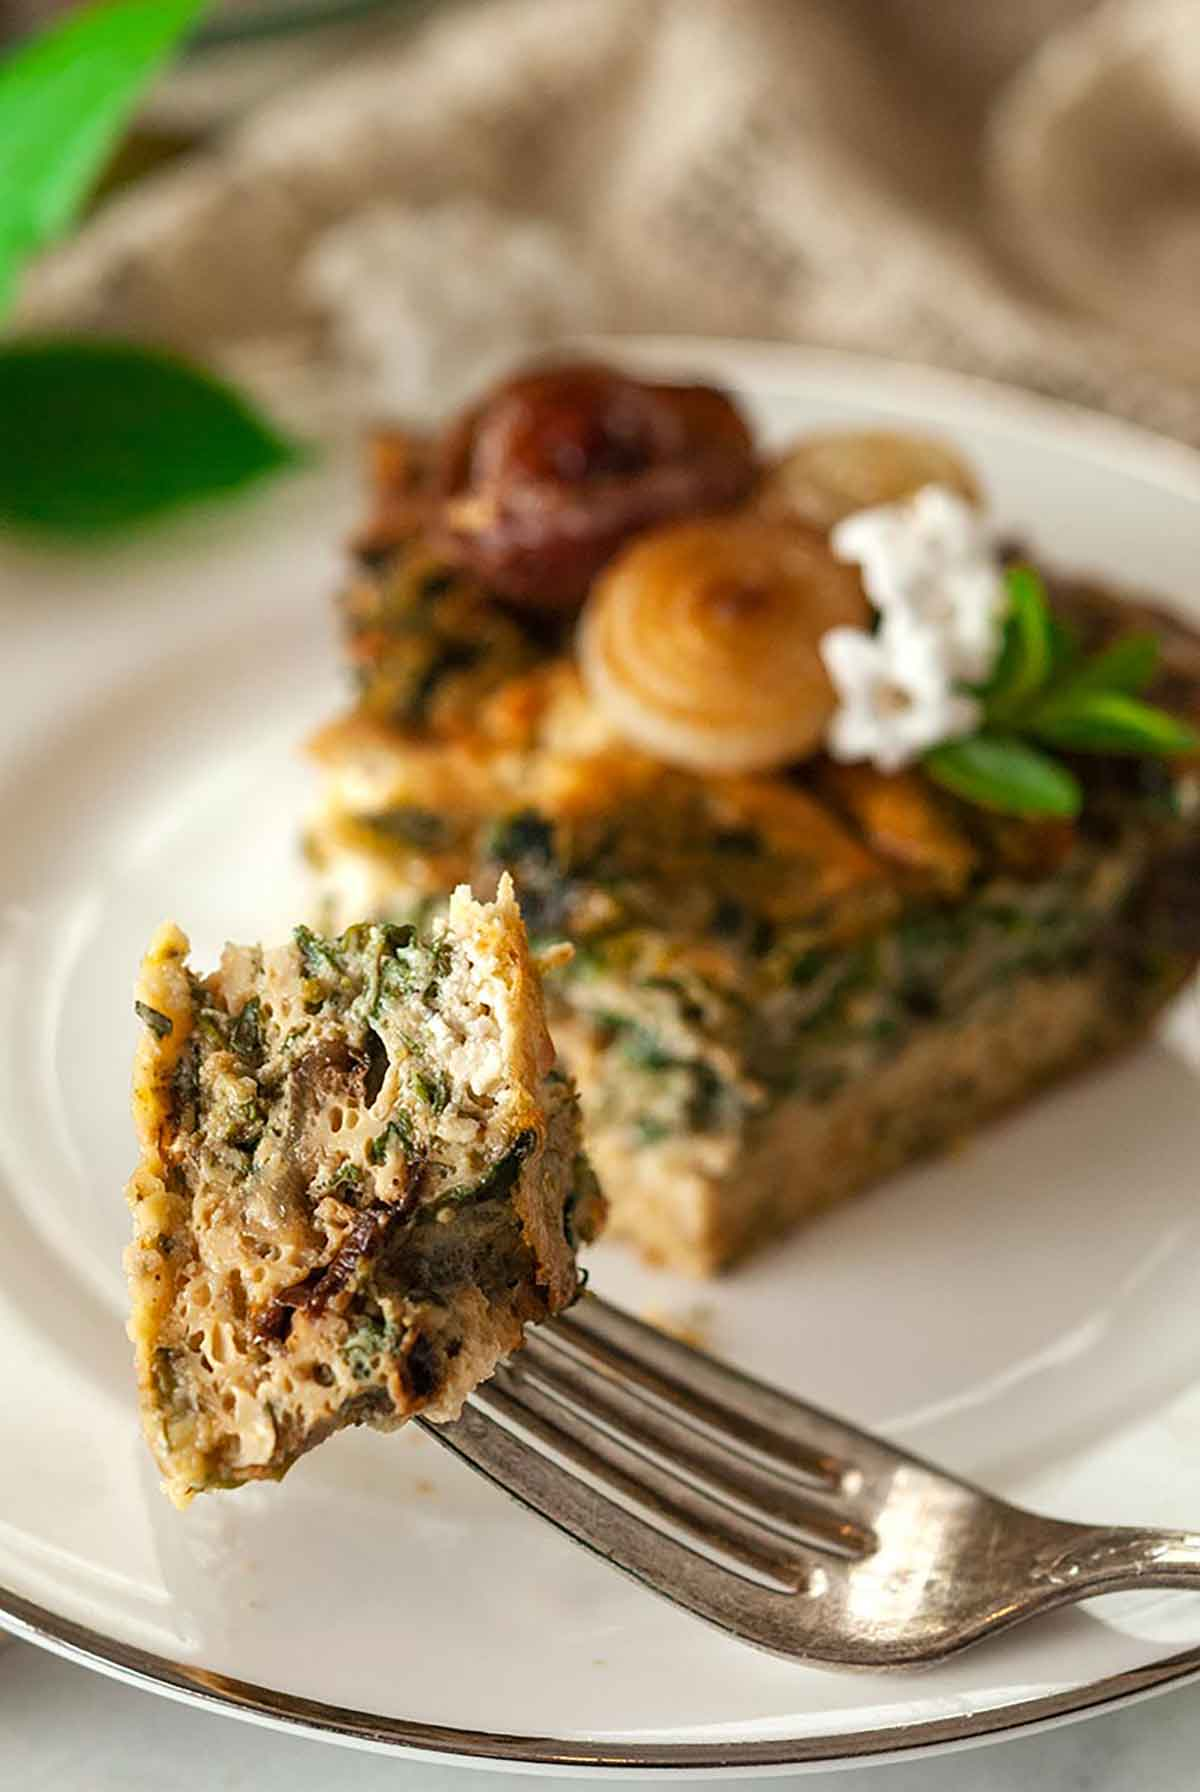 A piece of quiche on a fork with the slice in the background on a white plate.